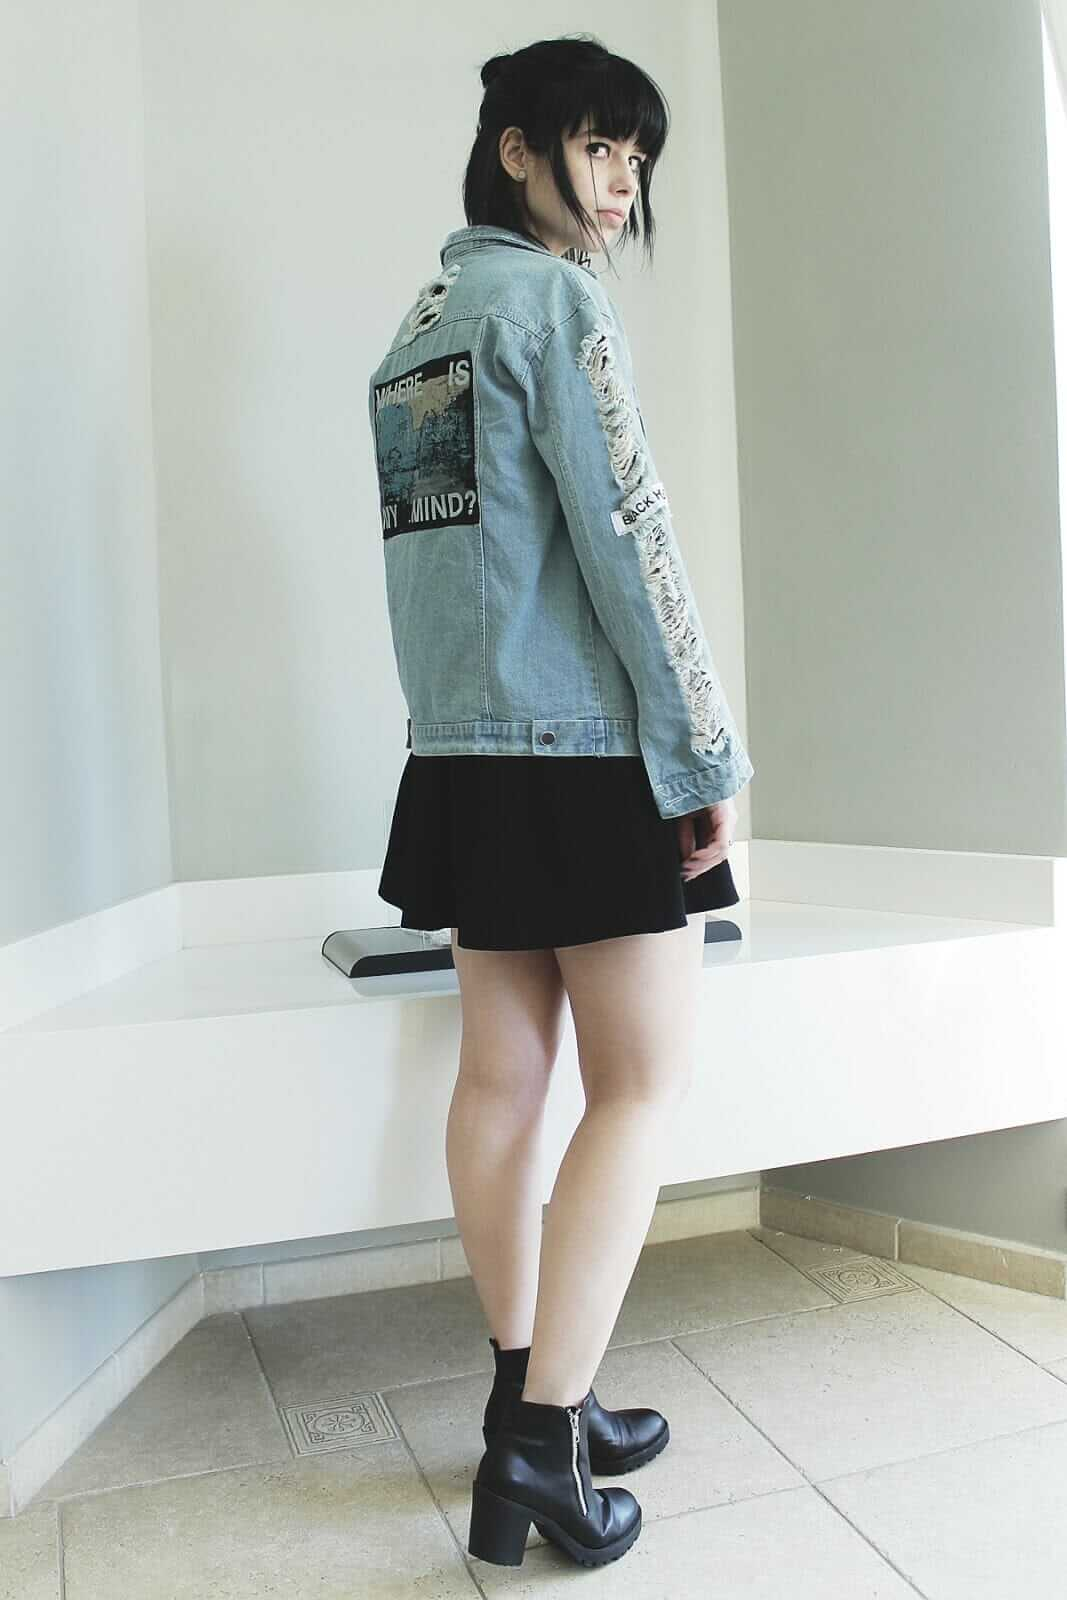 Denim jacket with patches, Chain necklace, Black skater dress & black ankle boots